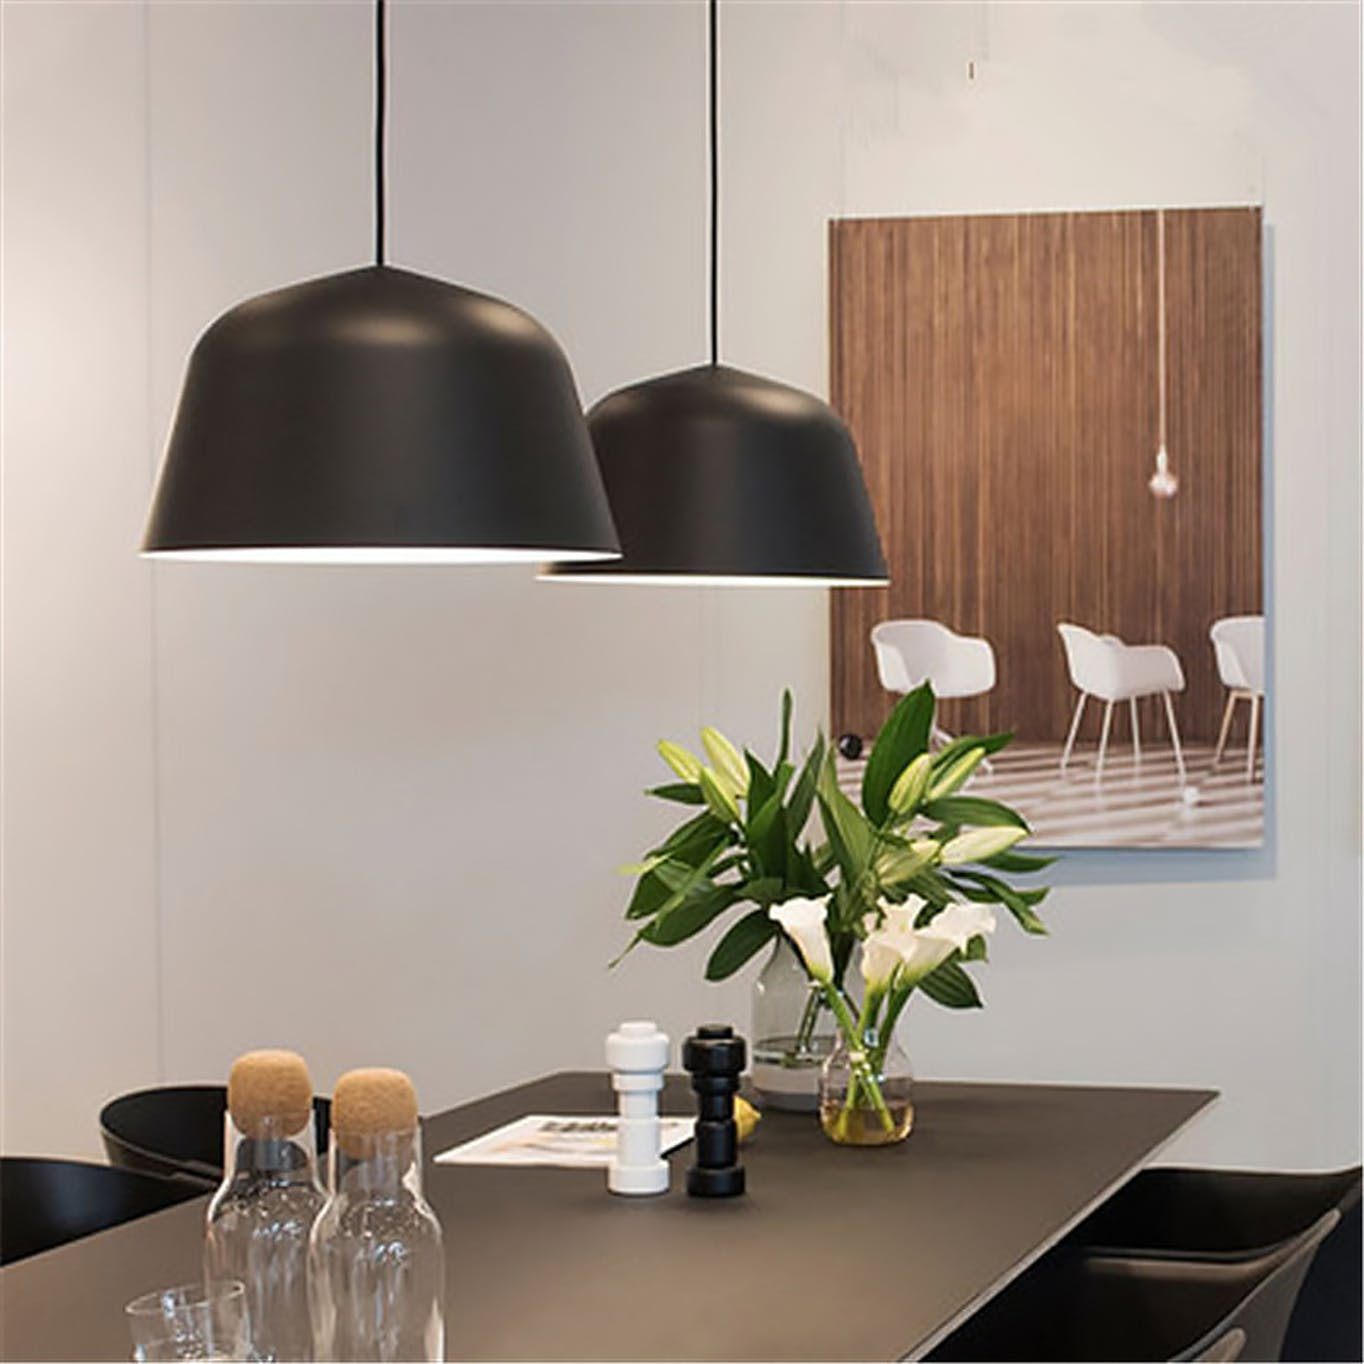 Black pendant lamps hanging above dining table